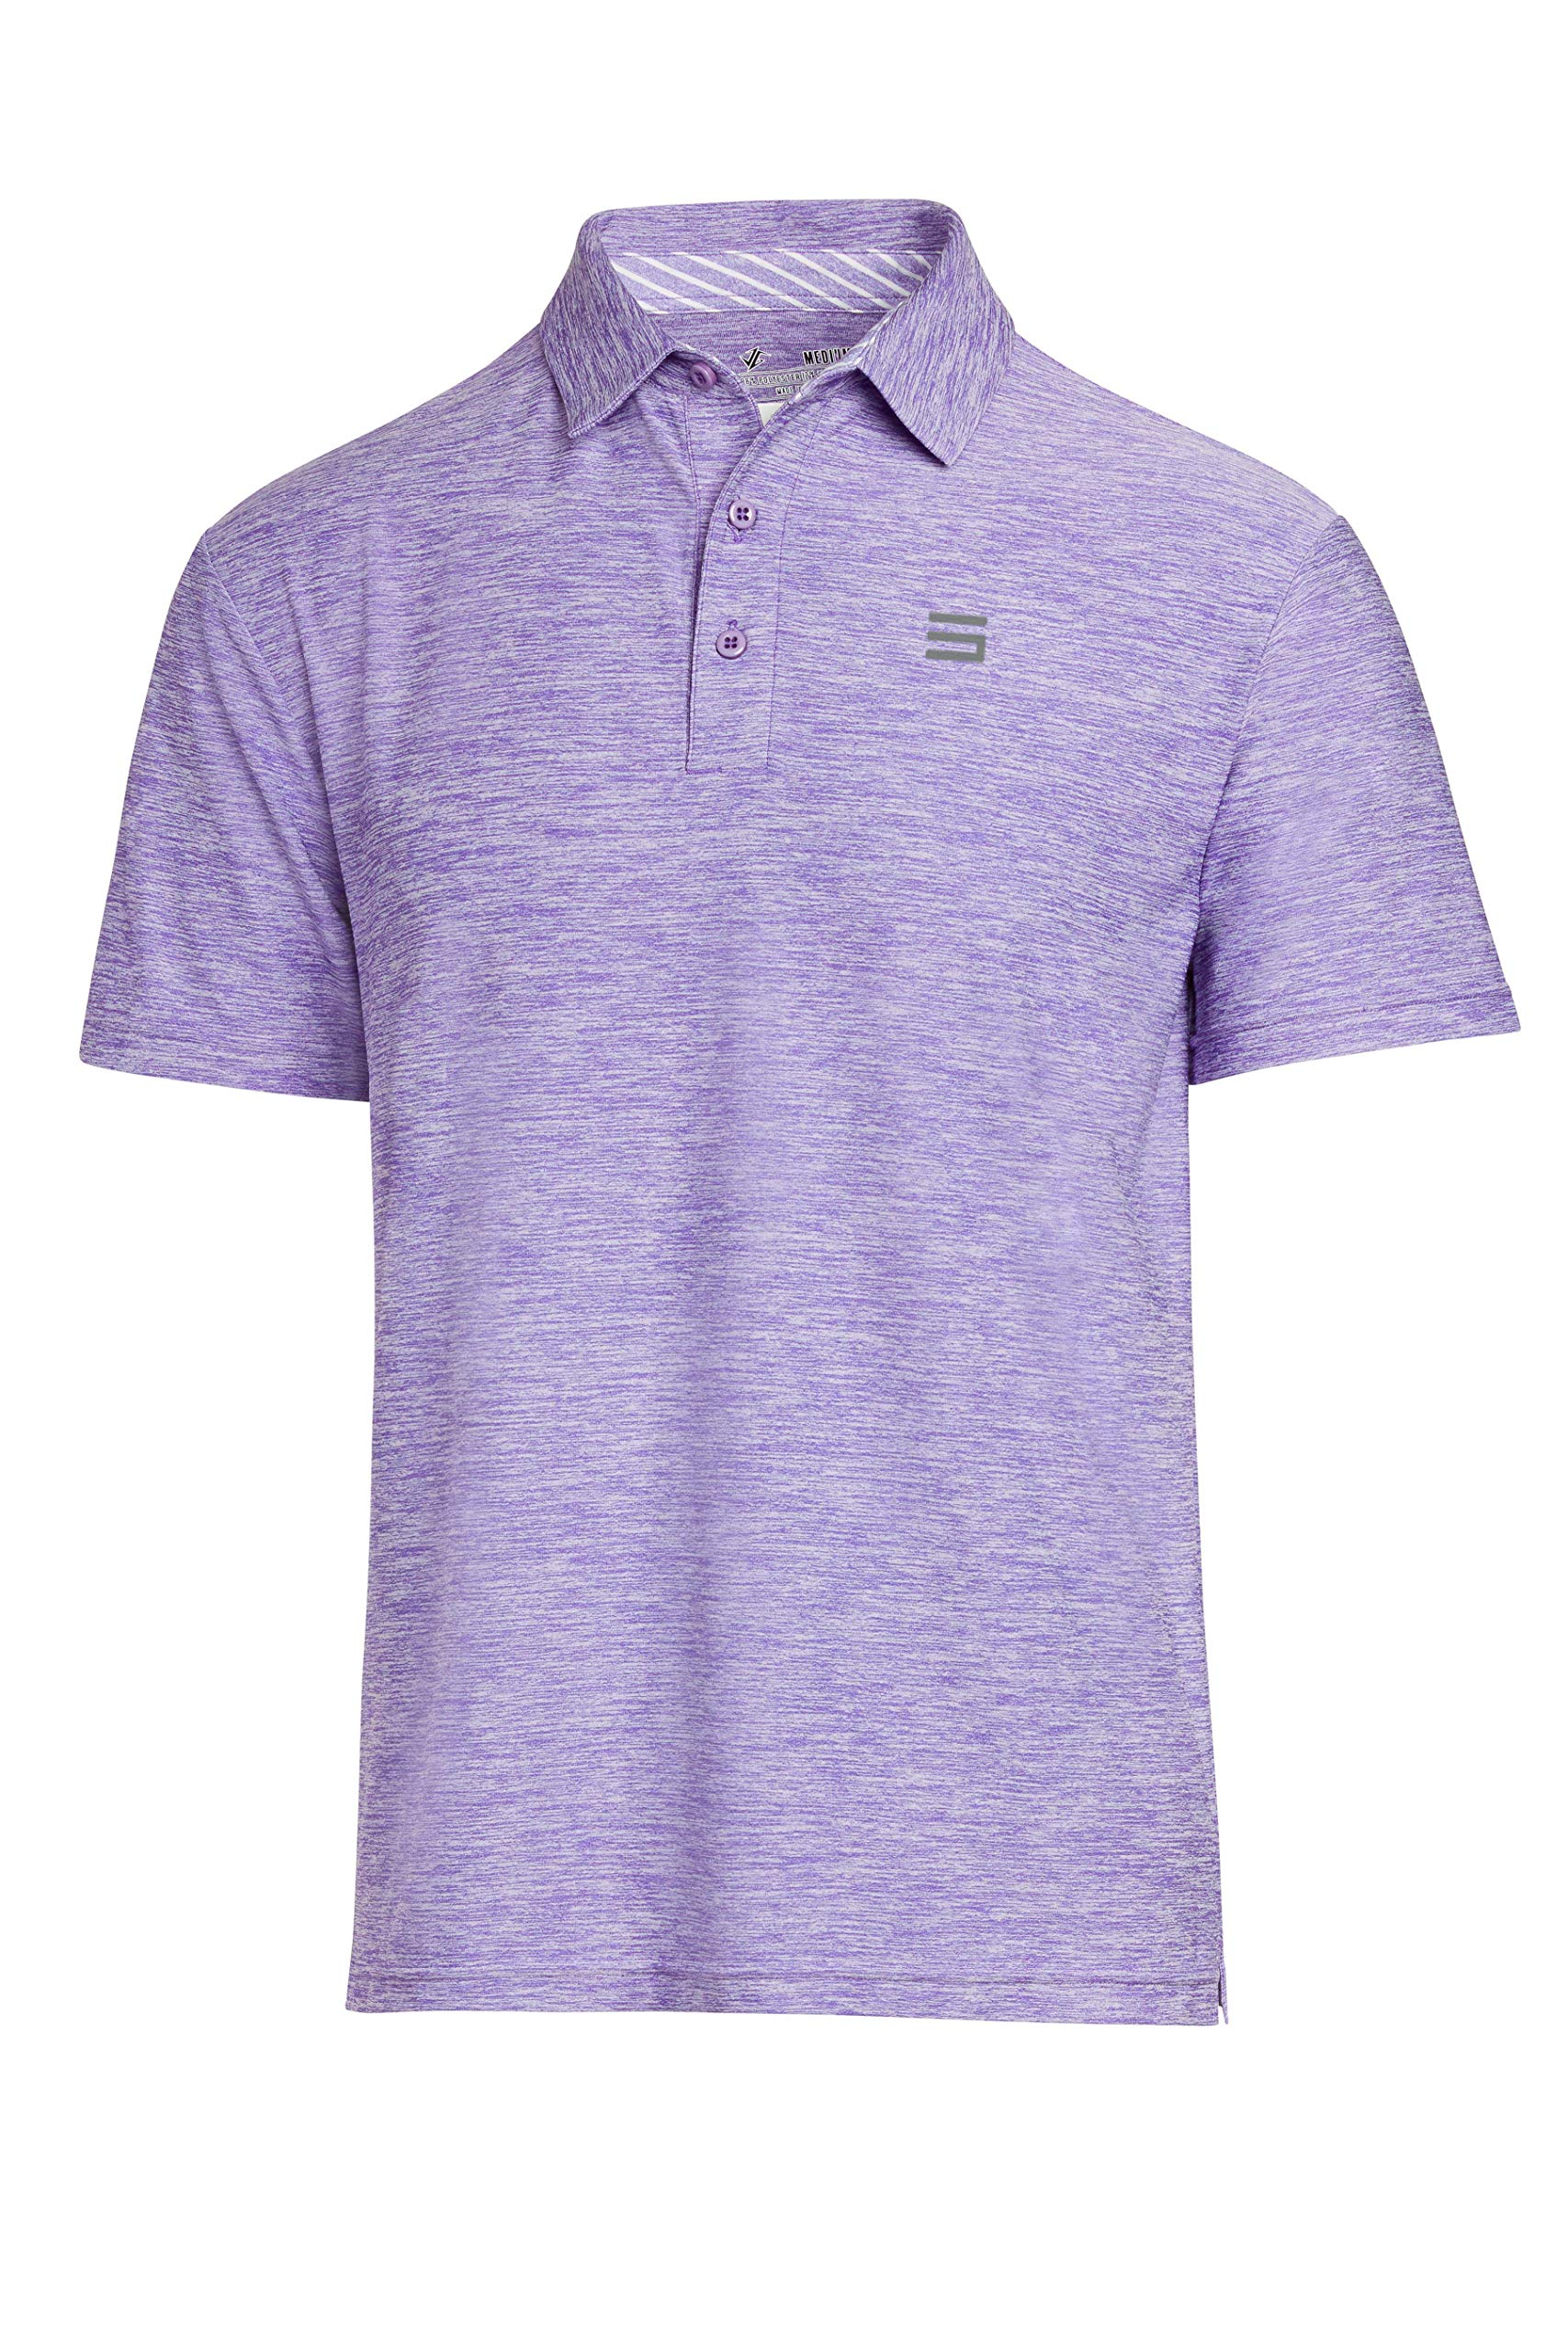 Three Sixty Six Golf Shirts for Men - Dry Fit Short-Sleeve Polo, Athletic Casual Collared T-Shirt Purple by Three Sixty Six